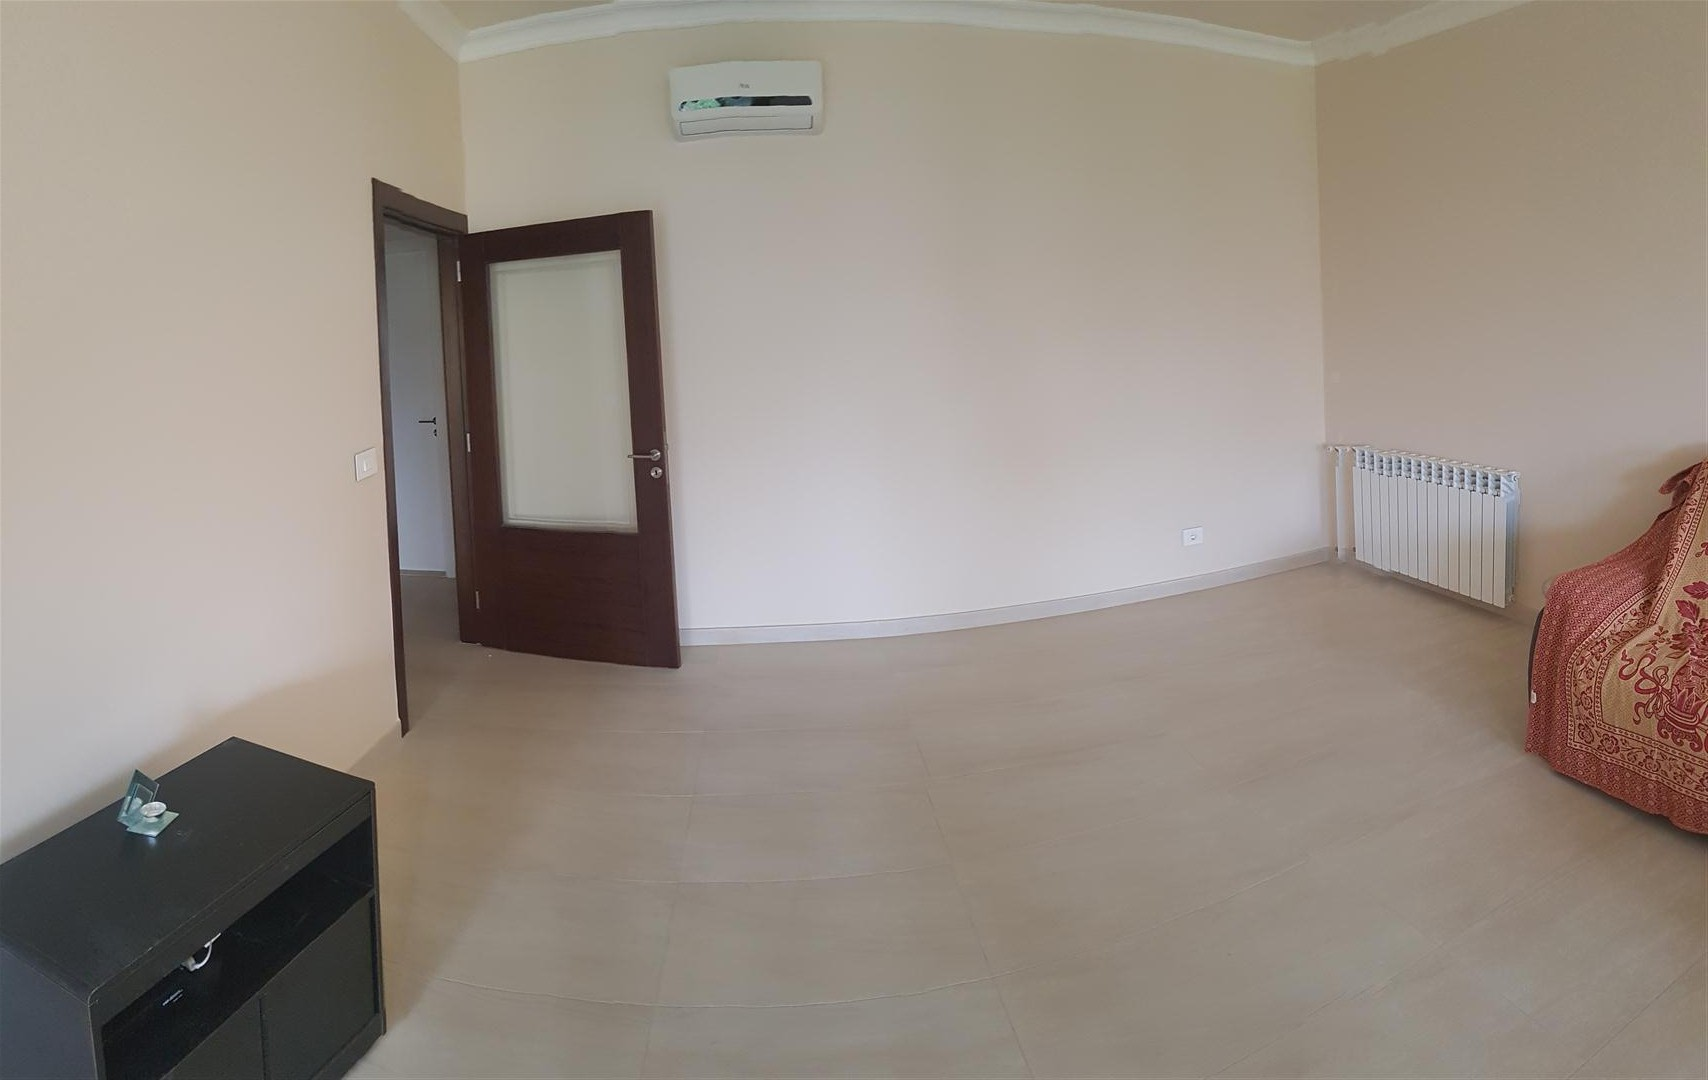 Apartment For Sale in Jbeil Sea Road 1 min Walk To The Beach